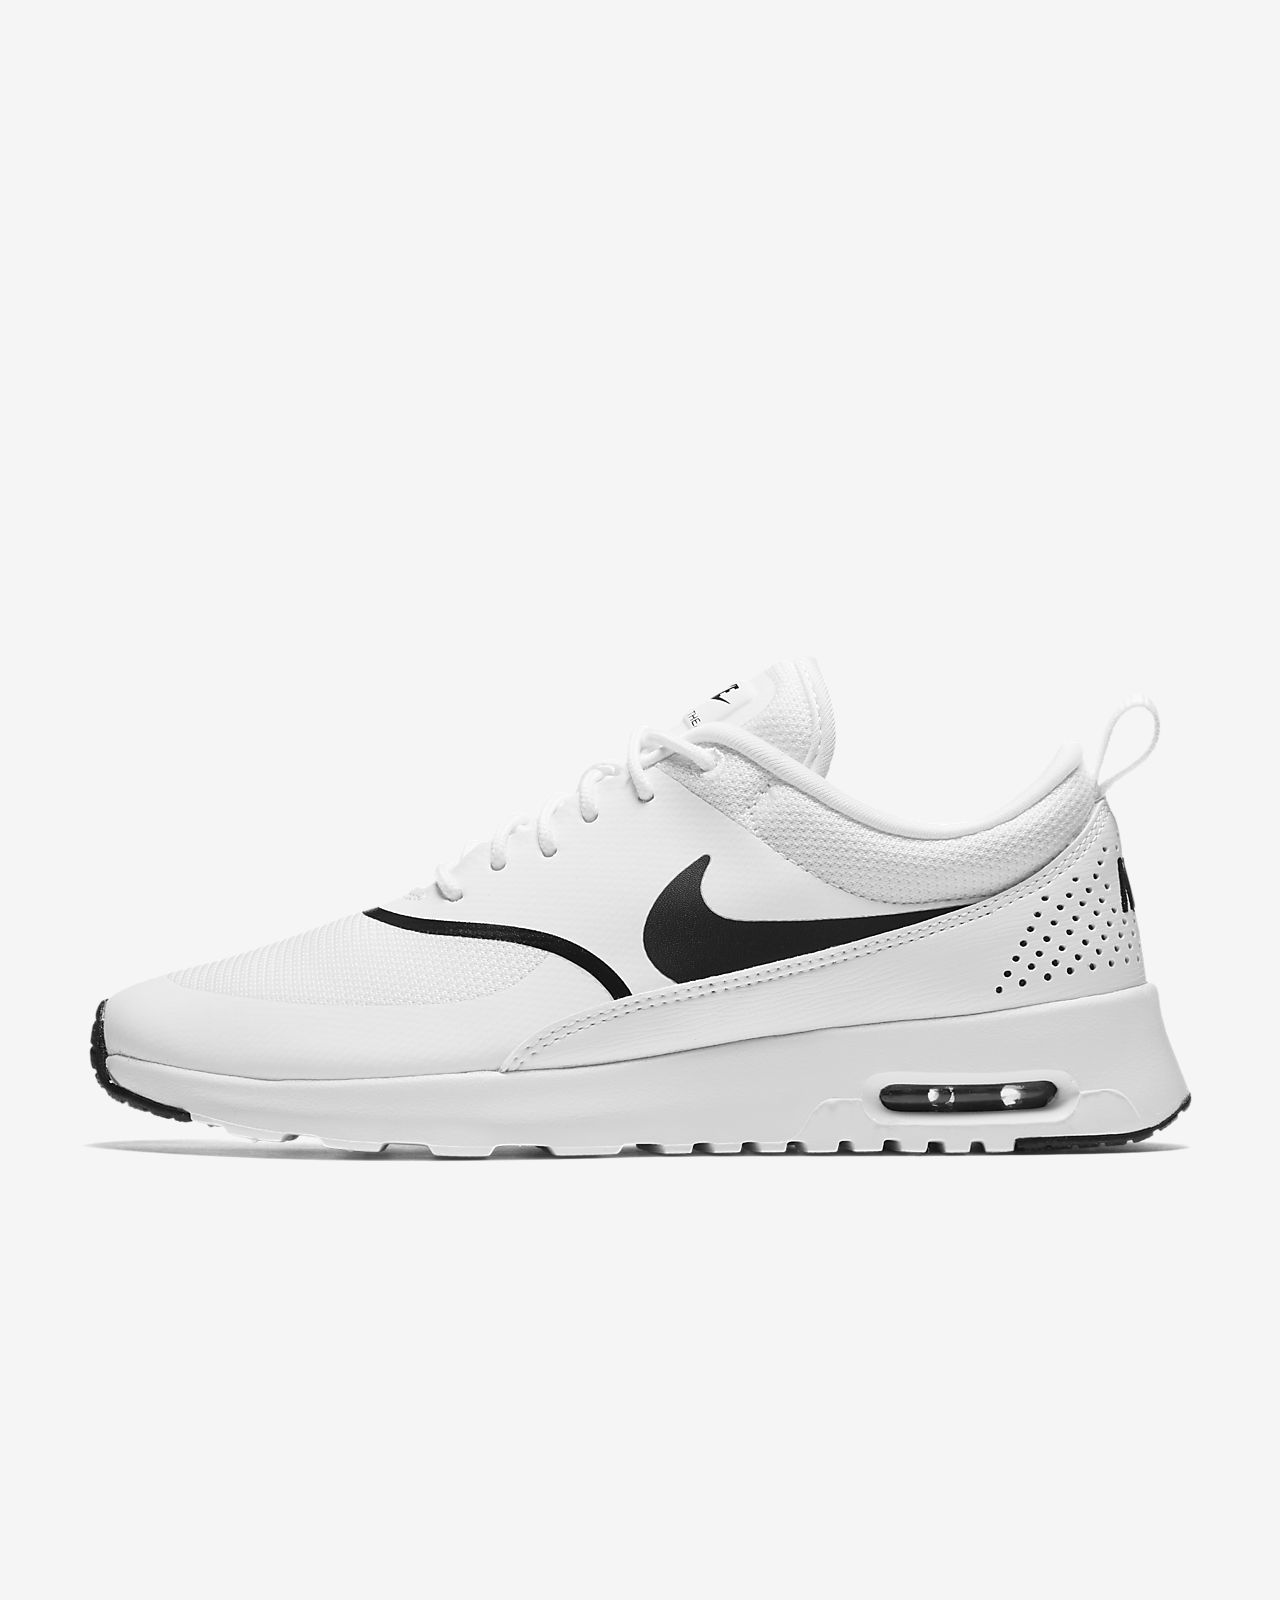 grossiste 50985 665cf Chaussure Nike Air Max Thea pour Femme